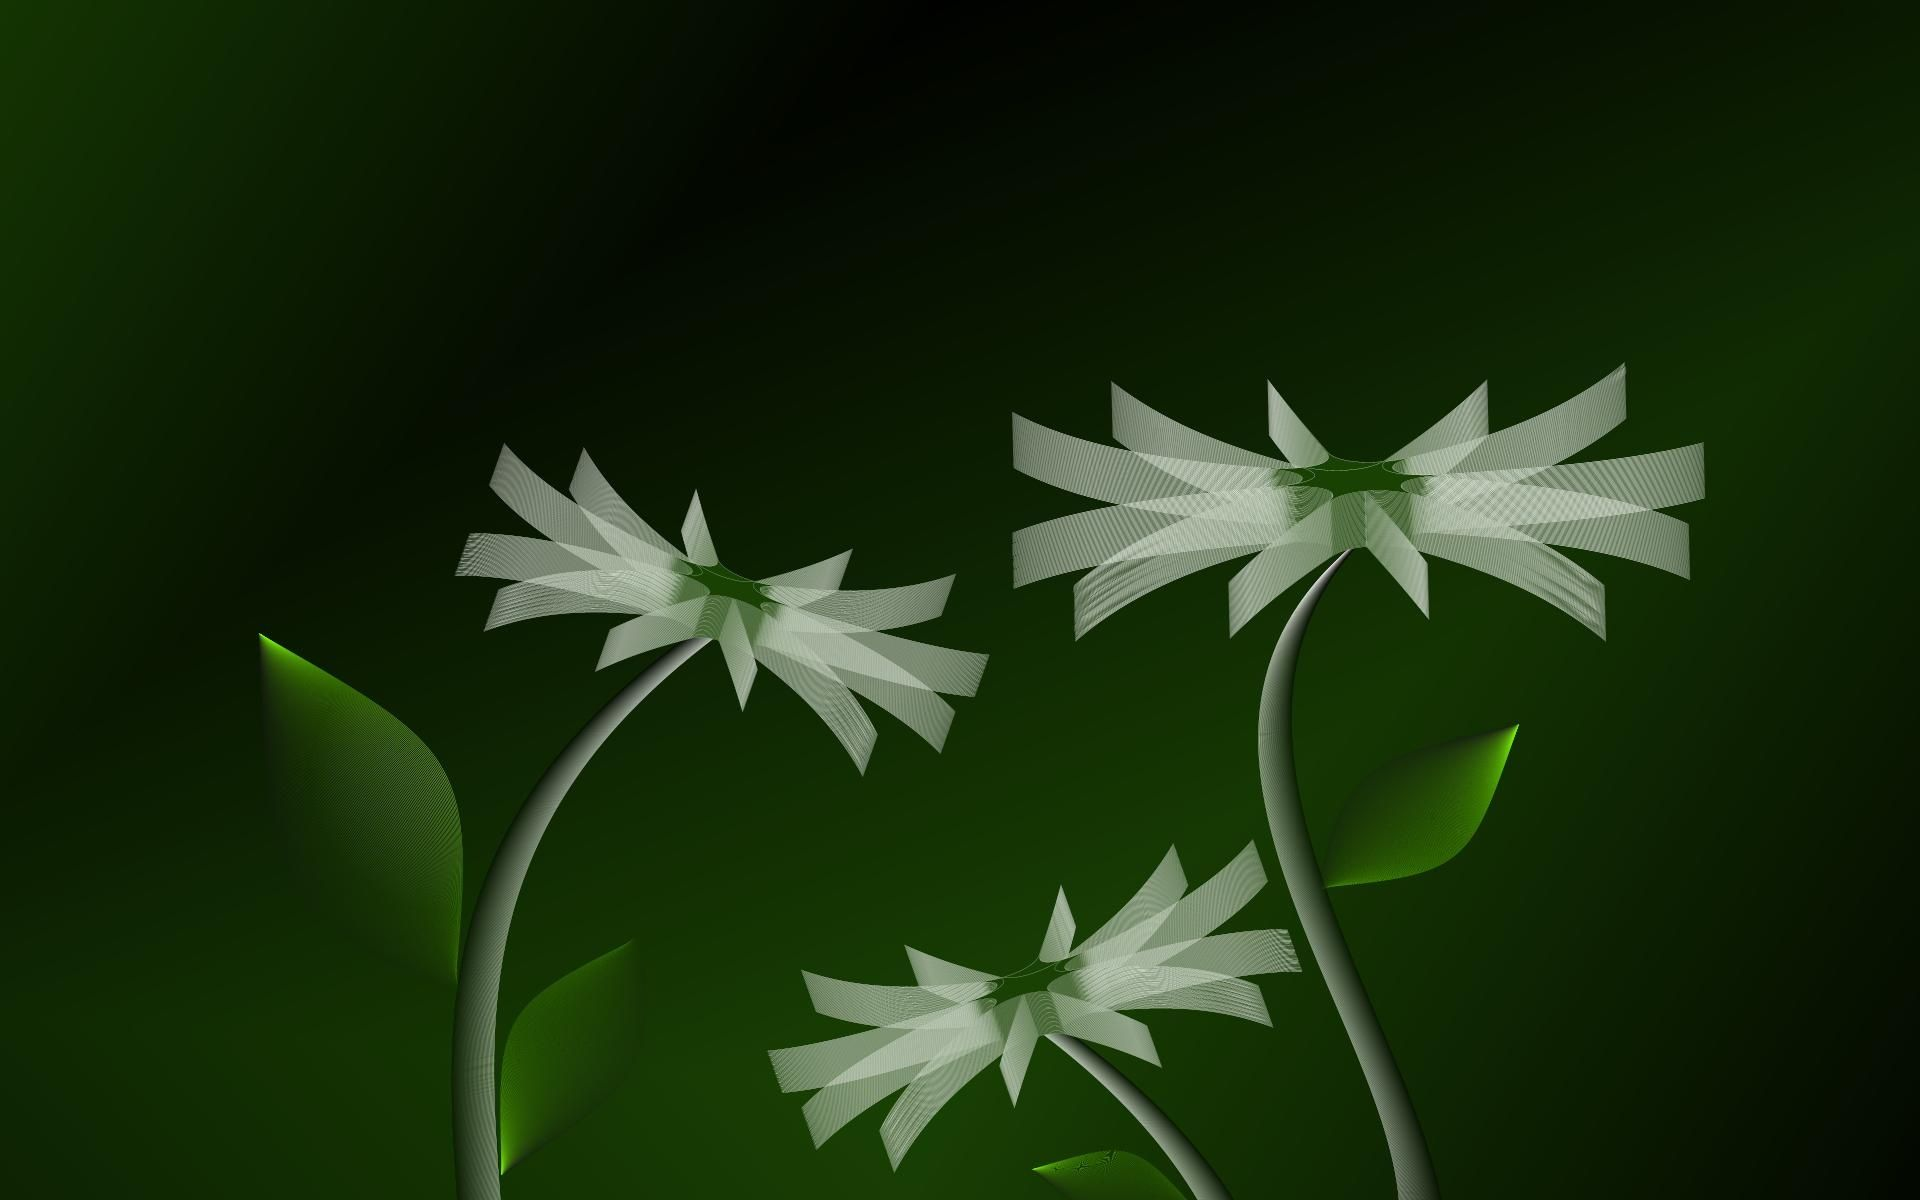 desktop hd flower 3d wallpaper | 3D-HD Wallpaper ...